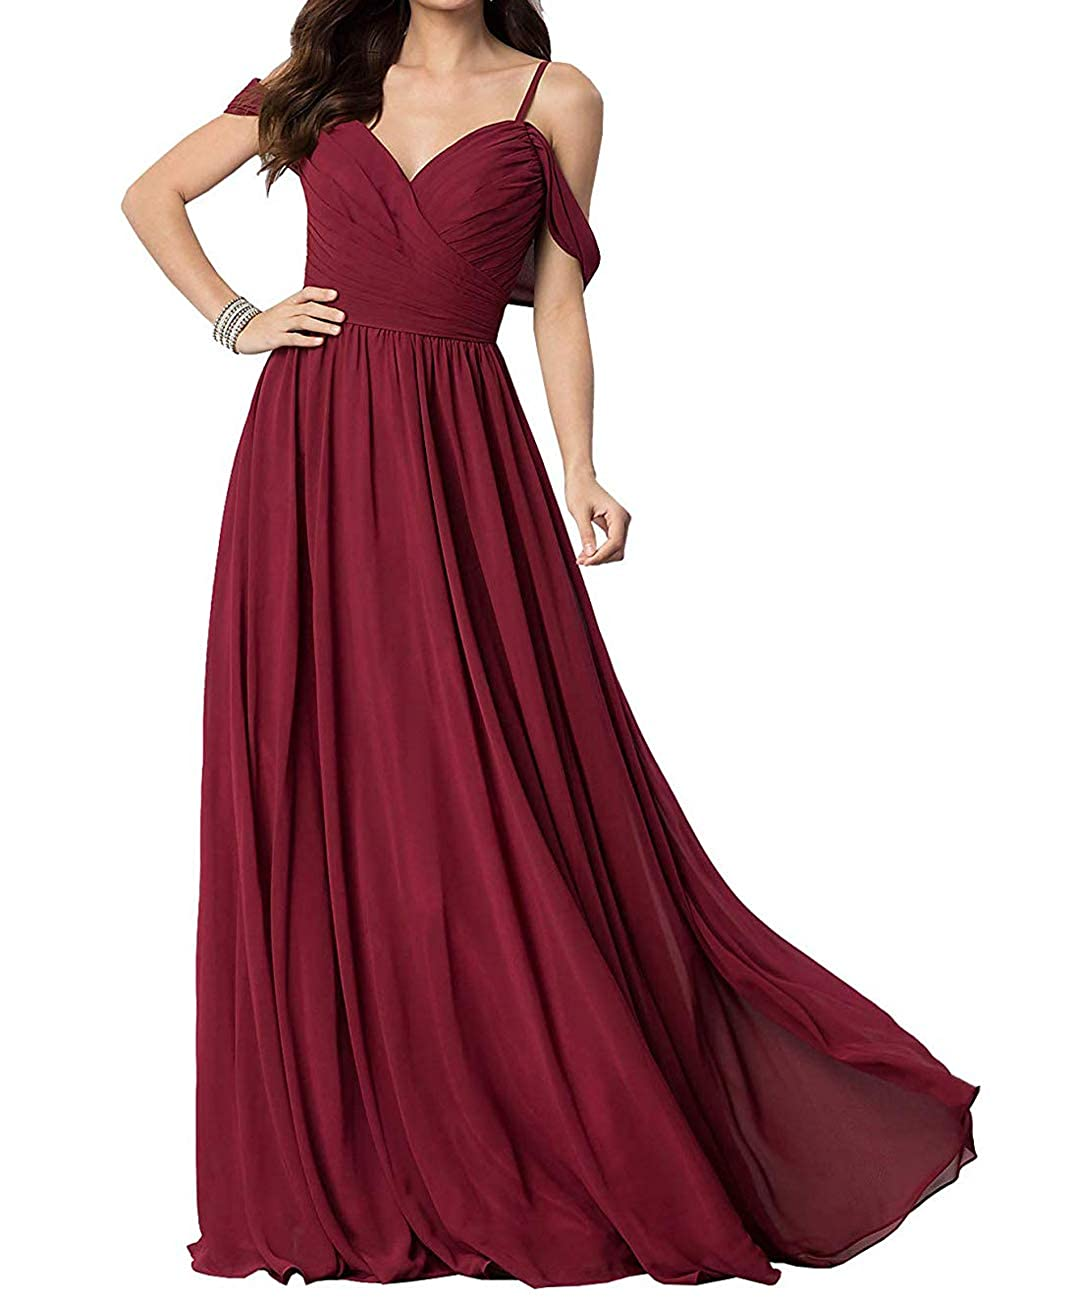 Burgundy Long Prom Gown and Evening Dresses for Women OffTheShoulder Bridesmaid Dresses